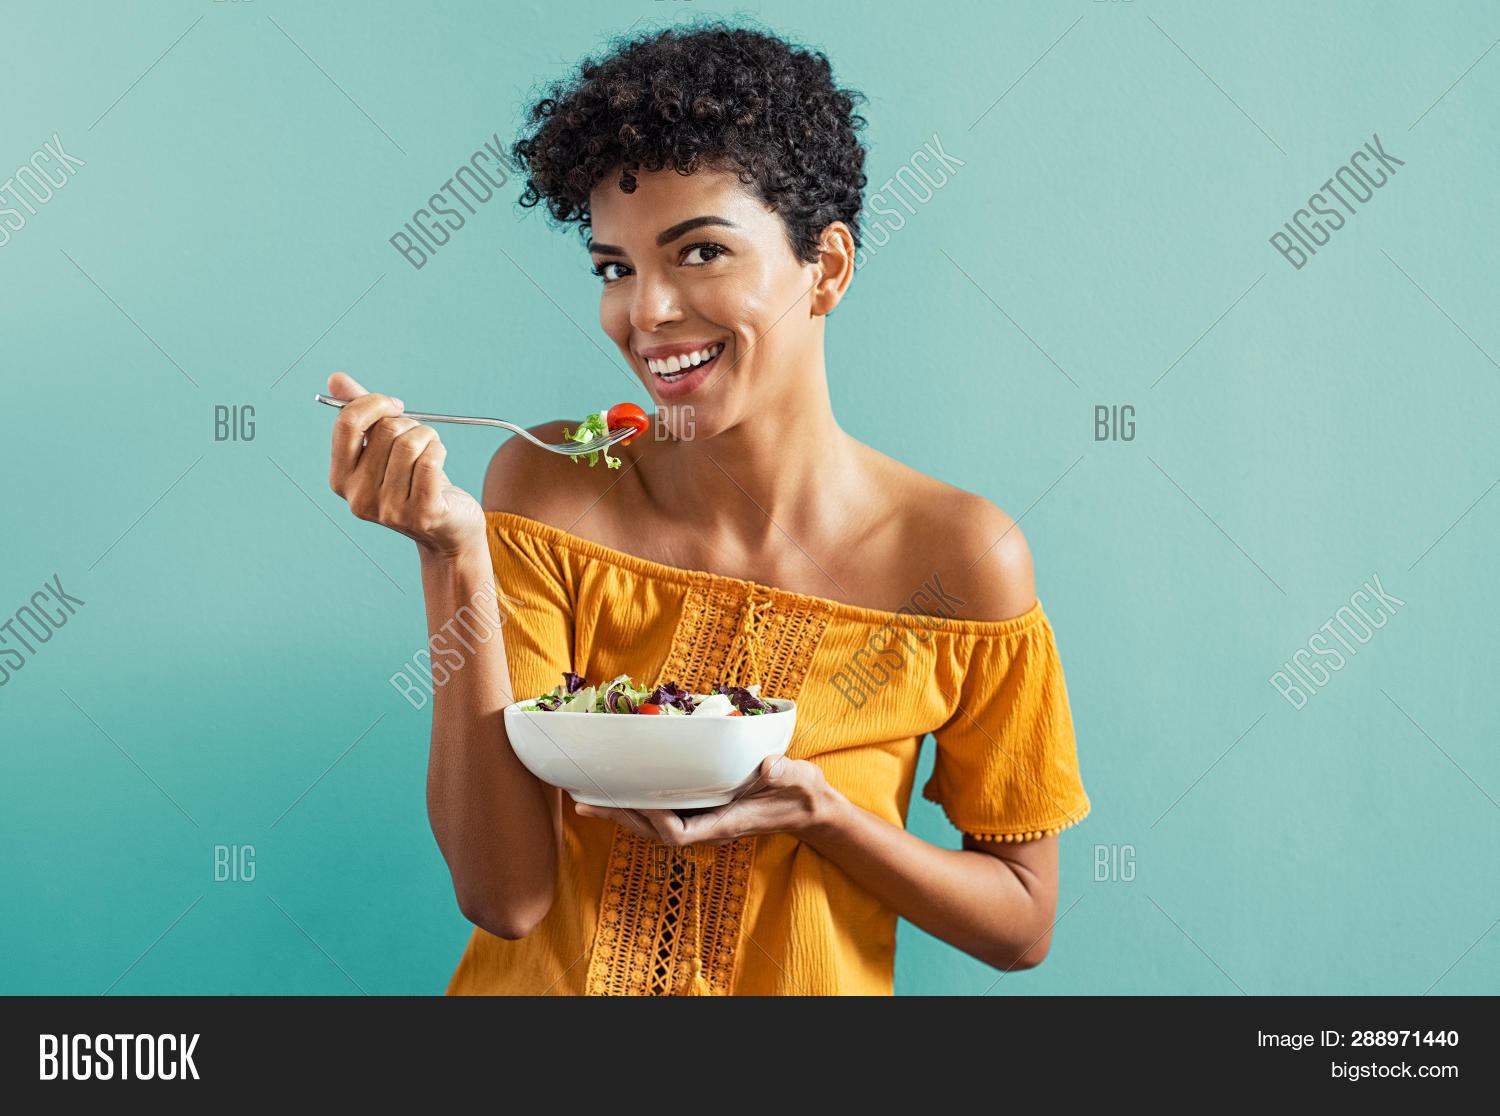 20 years,20 years old,african,african american,african american woman,african woman isolated,american,background,beautiful,black,bowl,brazilian,brazilian woman,carefree,casual,cheerful,copy space,diet,diet food,diet woman,dieting,eat,eating salad,food,fork,fresh,freshness,girl,happy,healthy,healthy food,isolated,lettuce,light blue background,looking at camera,meal,nutrition,one,people,portrait,salad,salad bowl,smile,summer eat,tomato,toothy smile,vegetable,vegetarian,weight,young